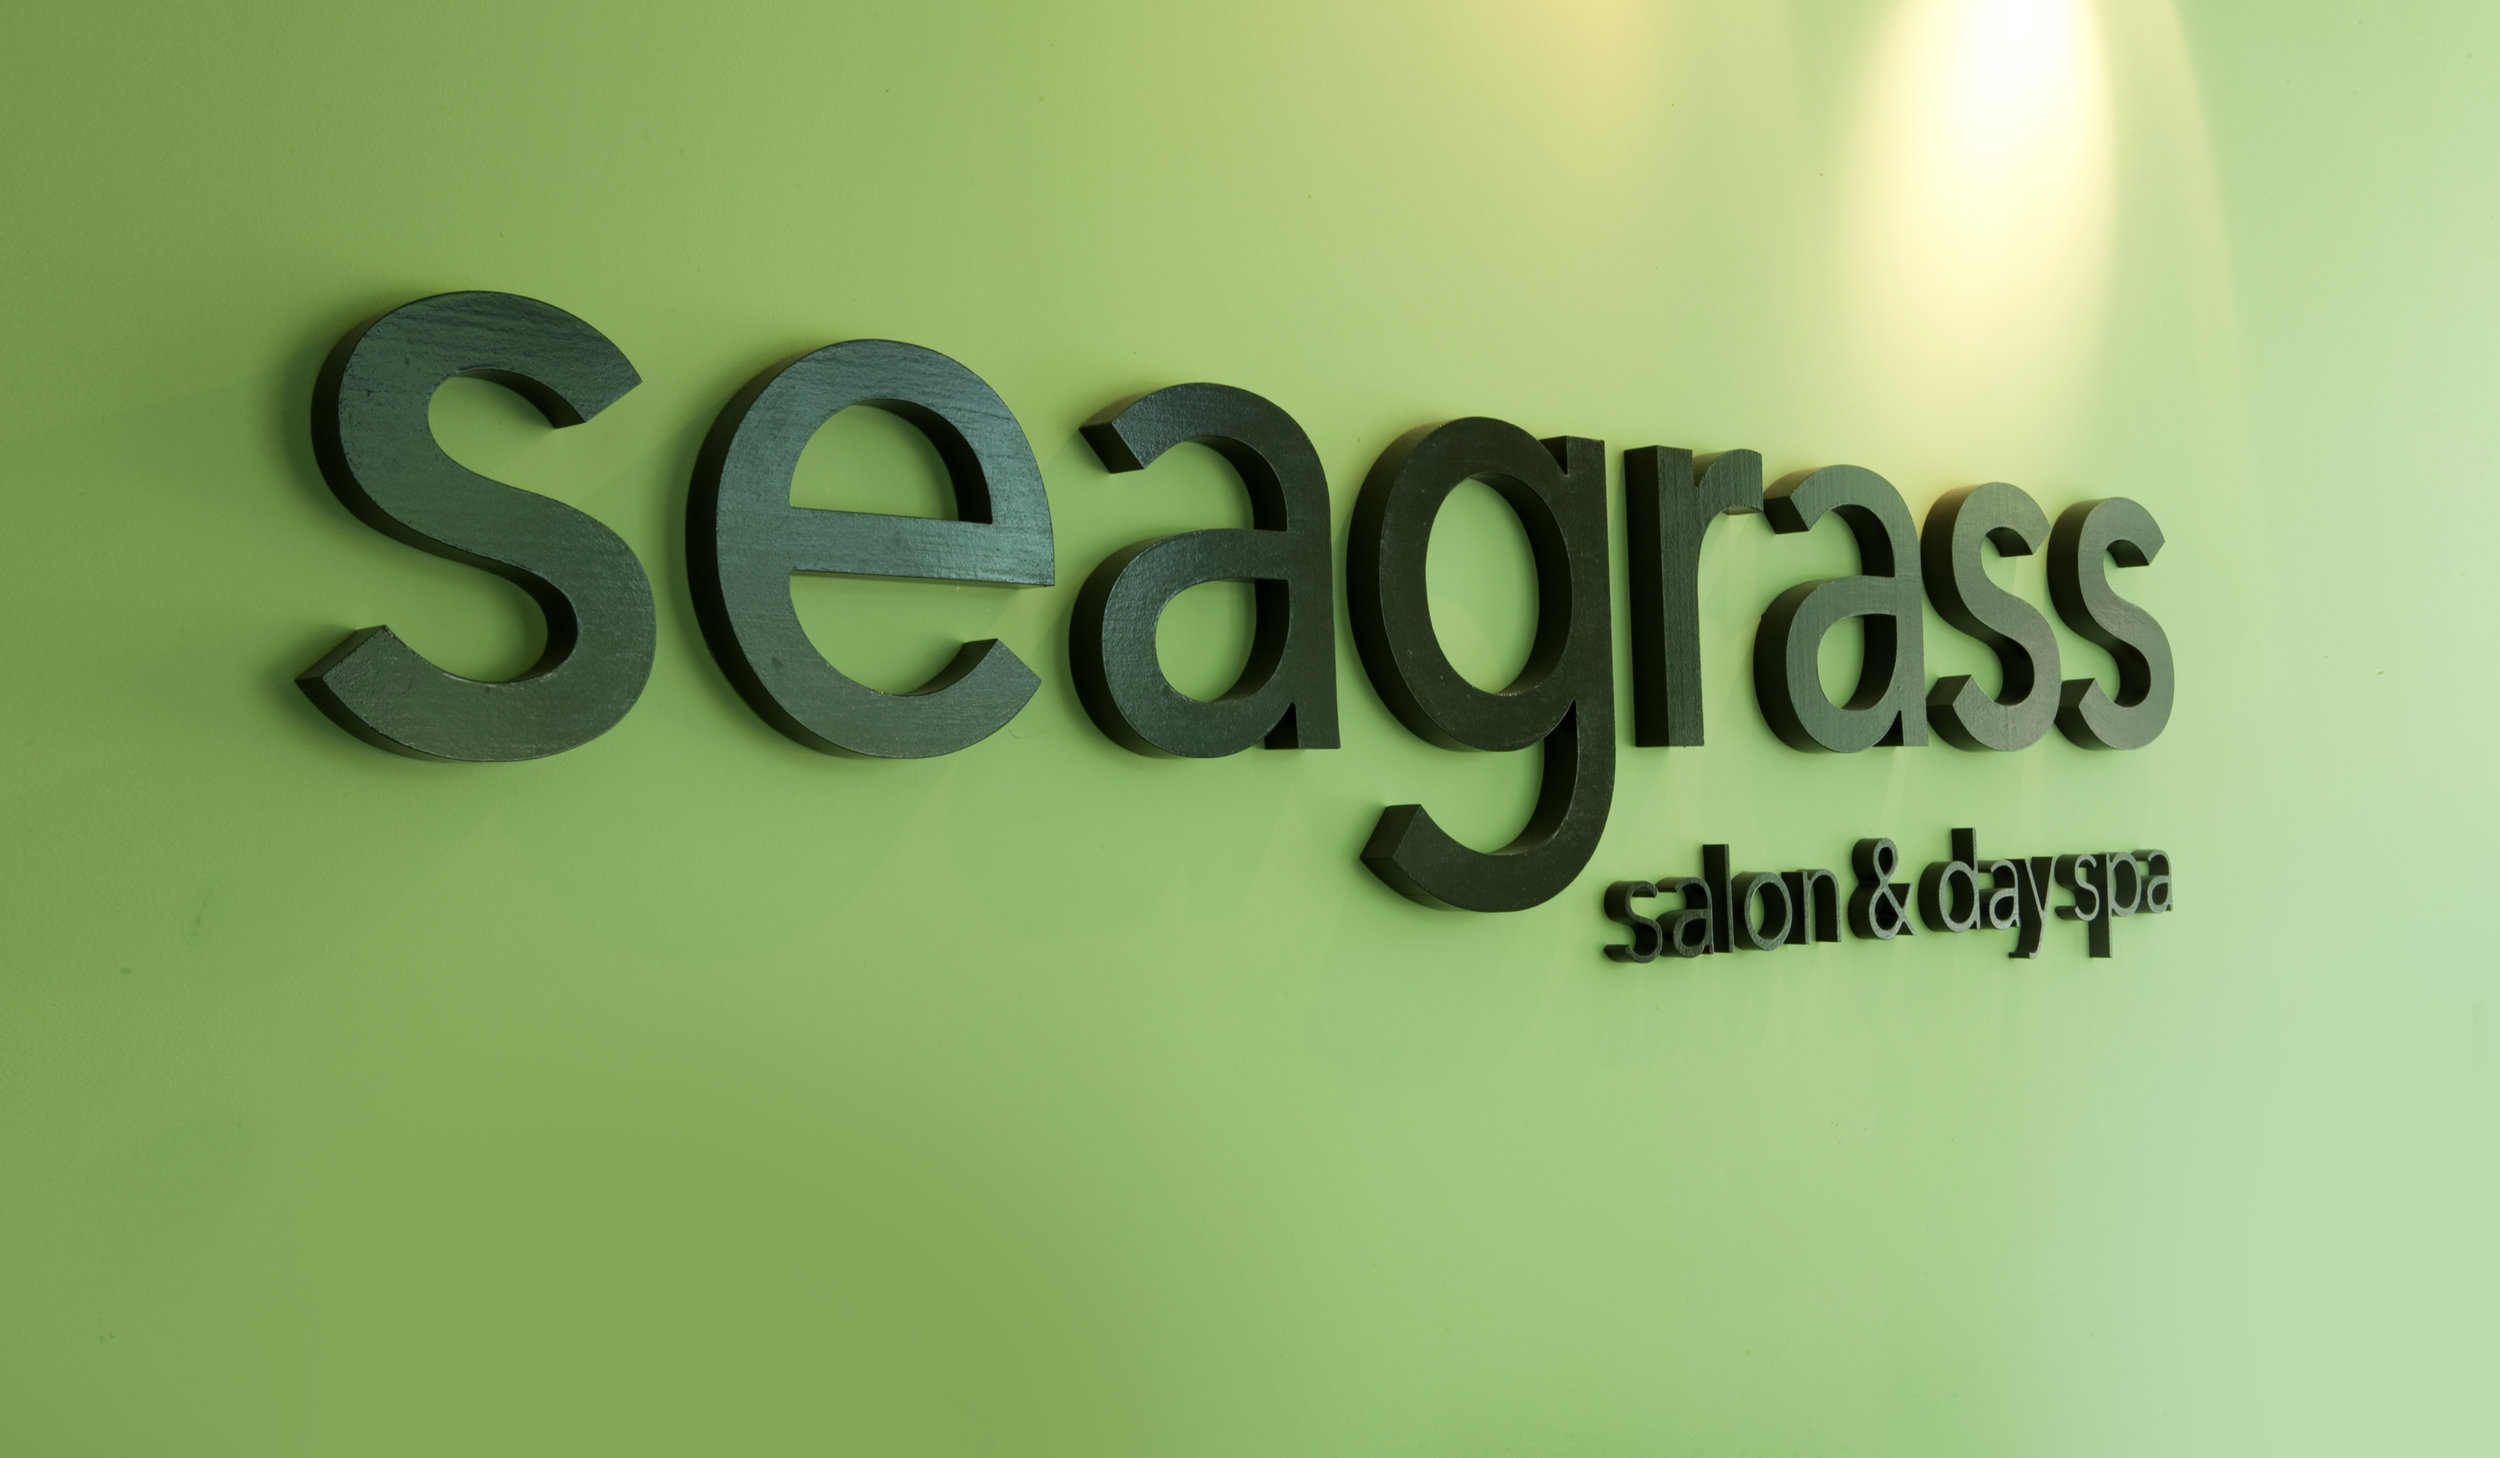 Seagrass inside lobby sign .jpg